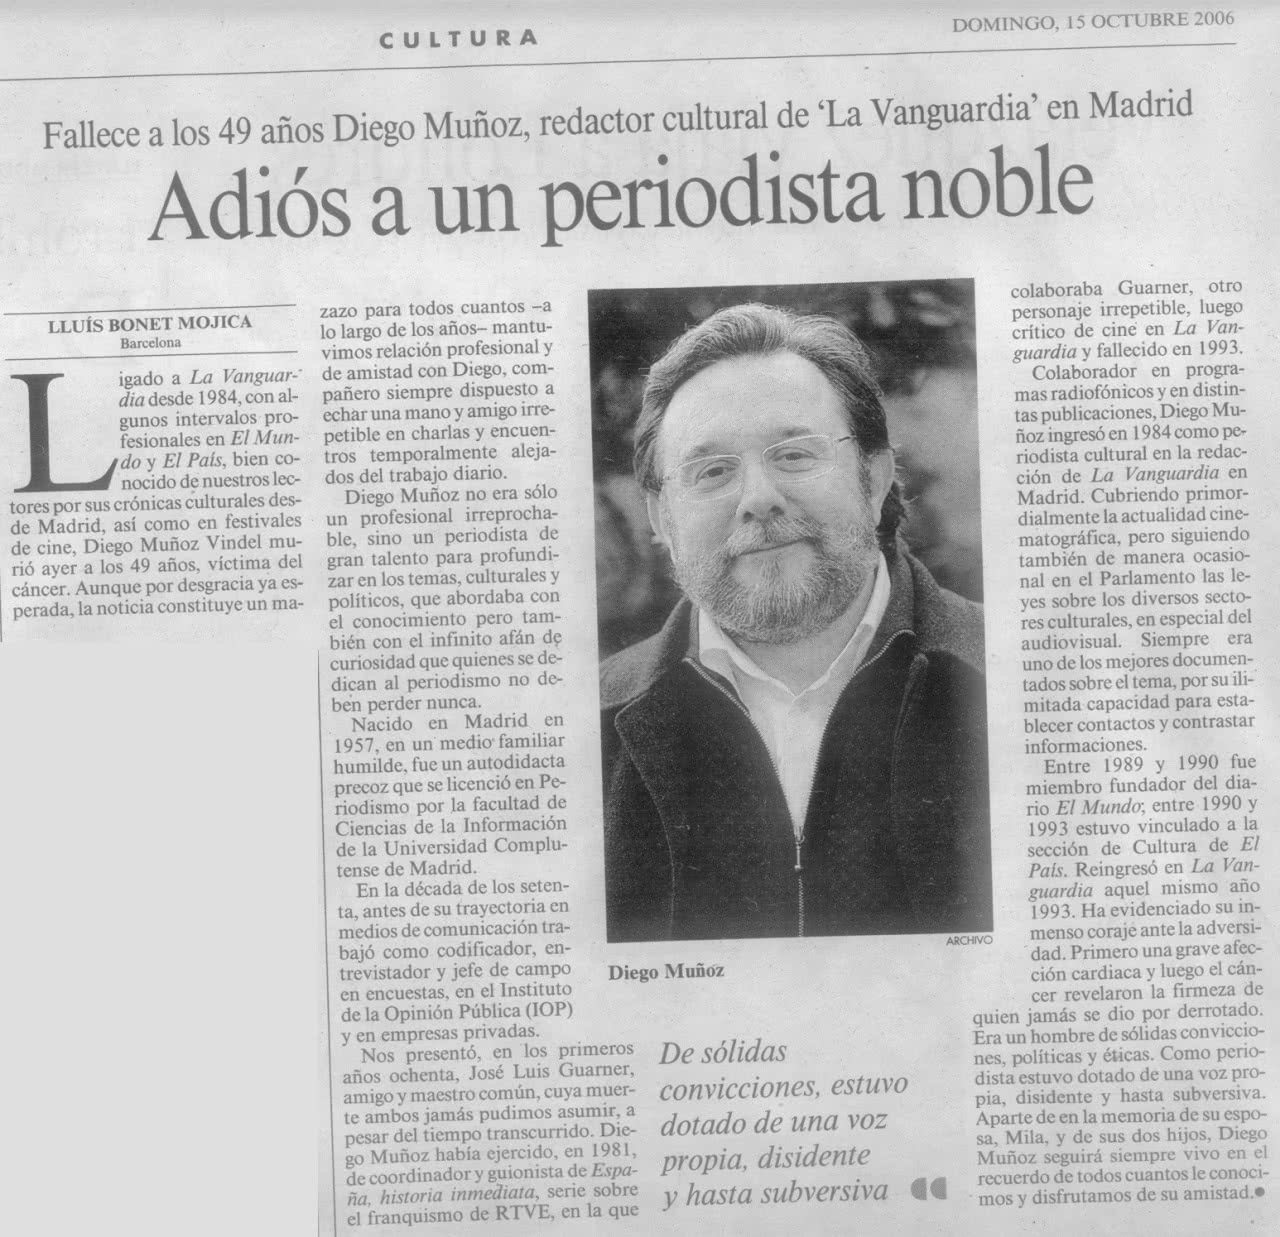 Obituary at La Vanguardia